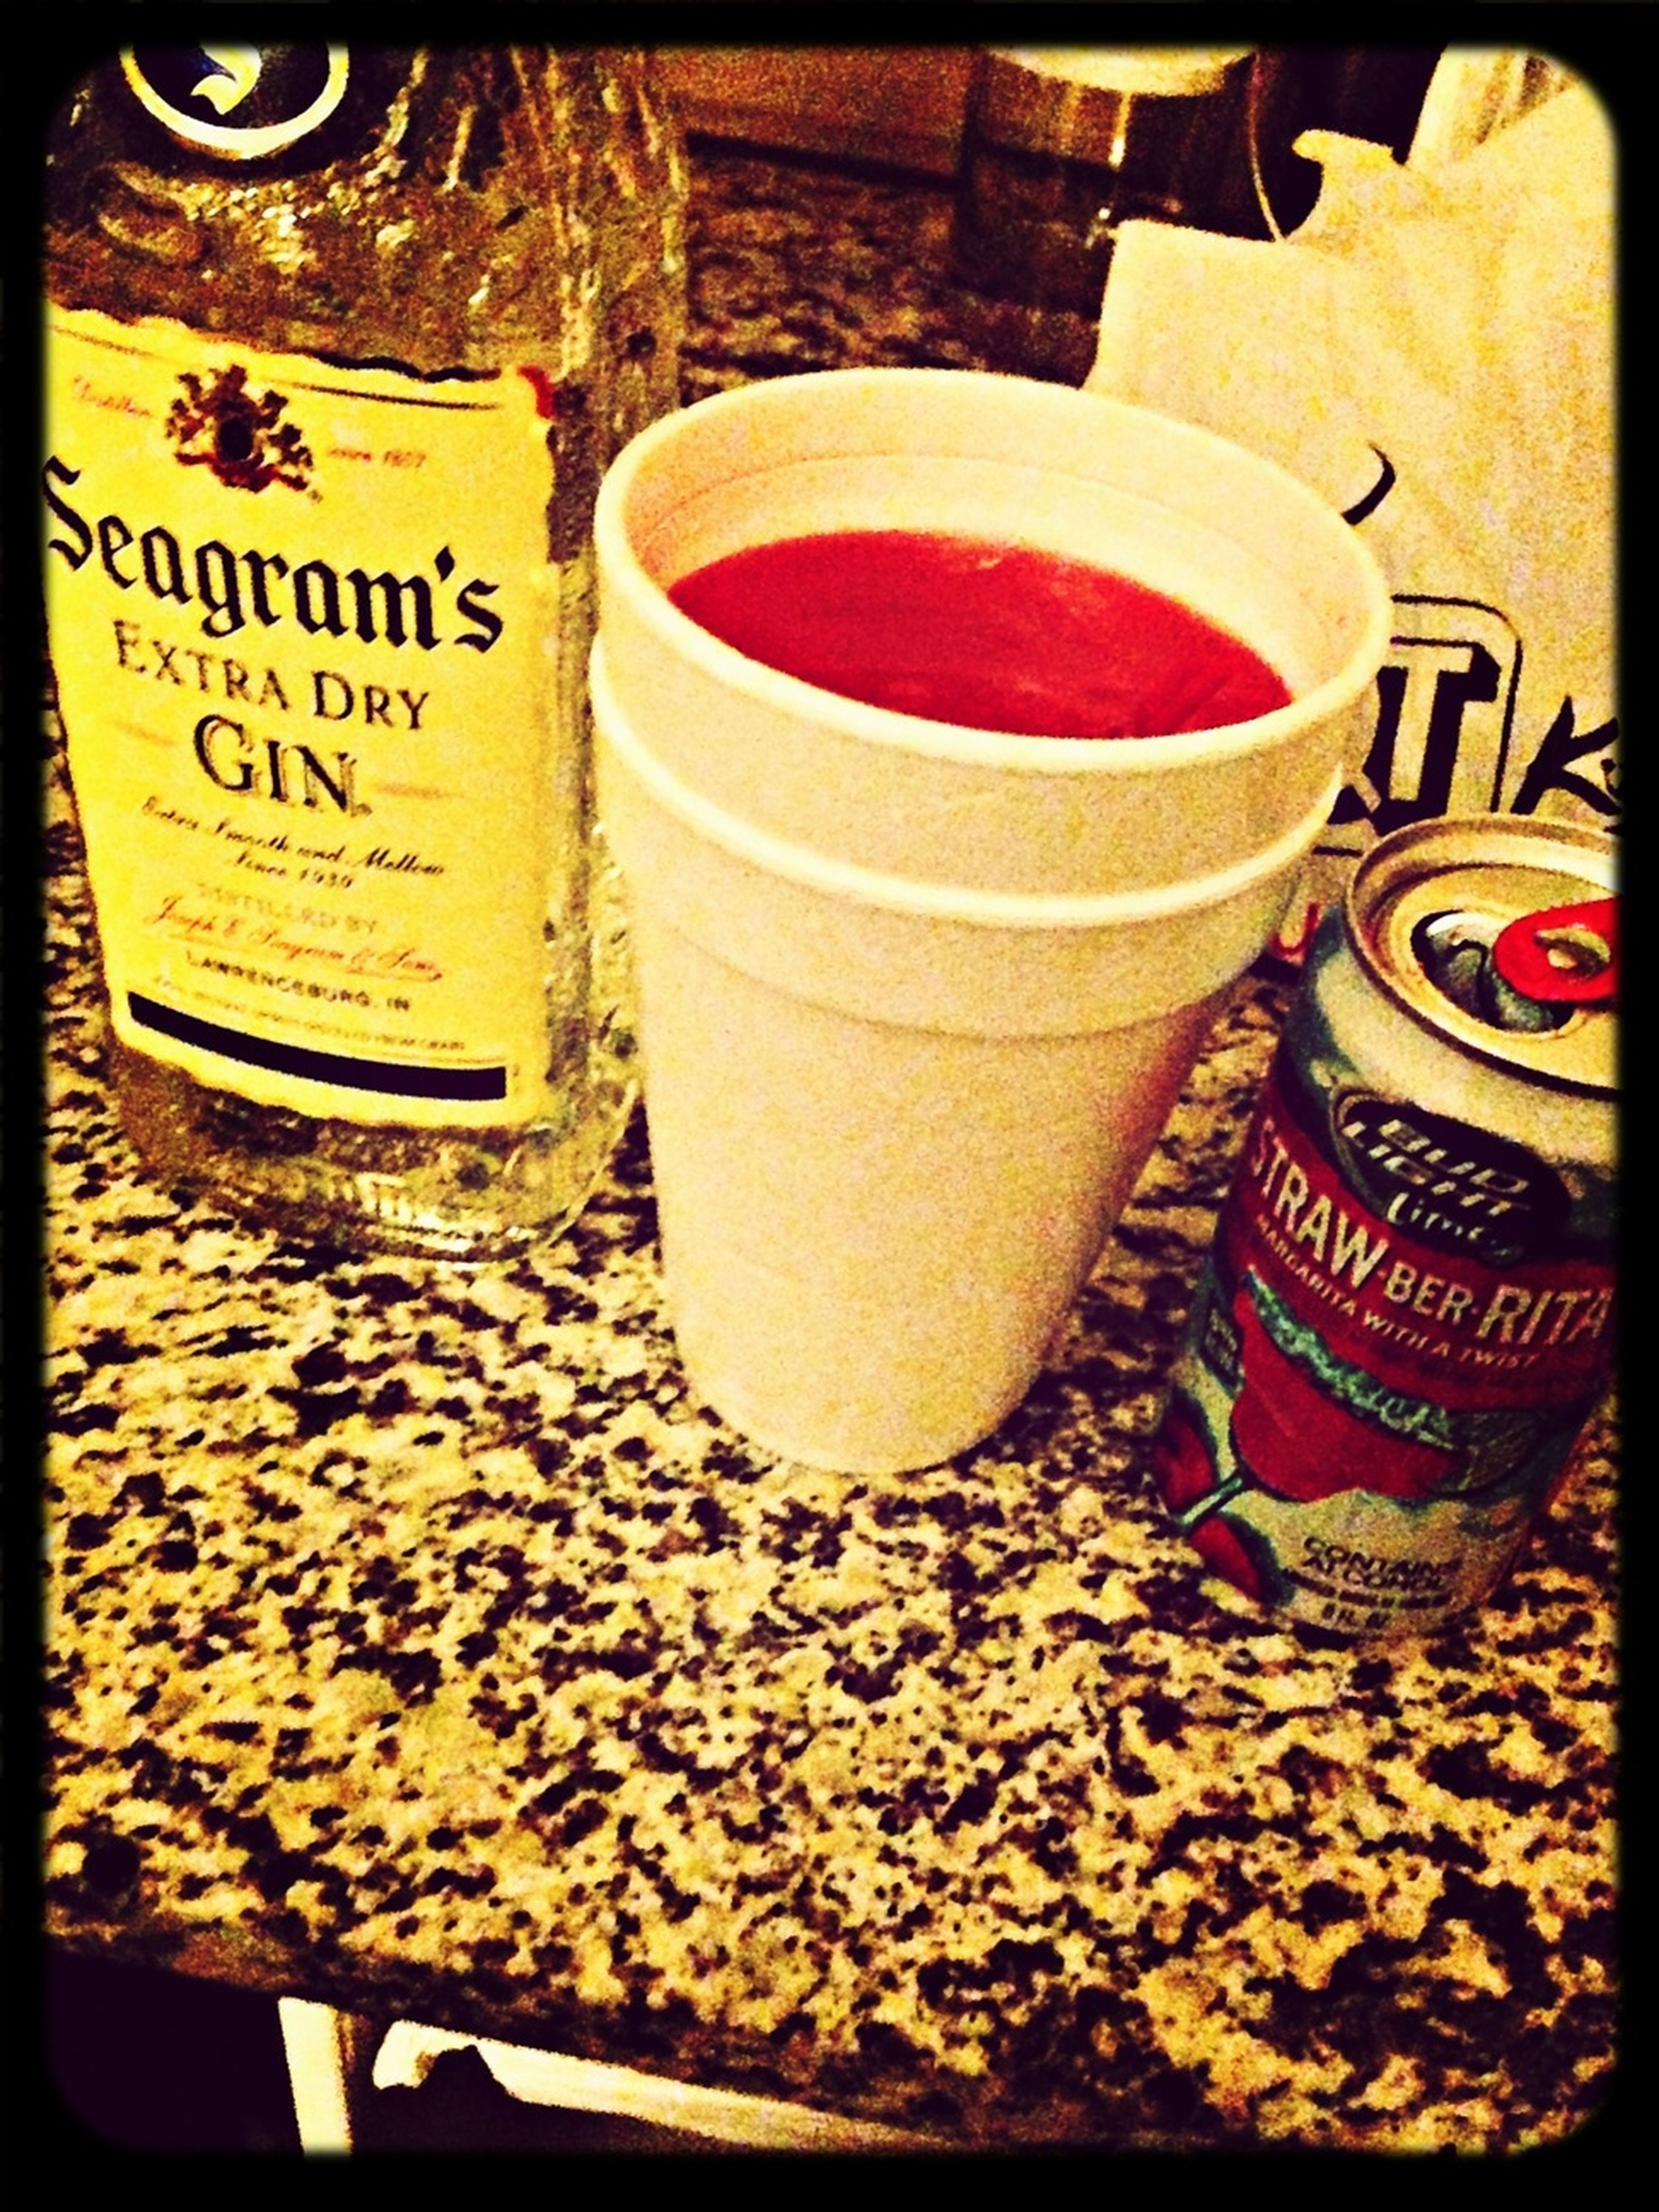 Cup2 of my double cup concoction